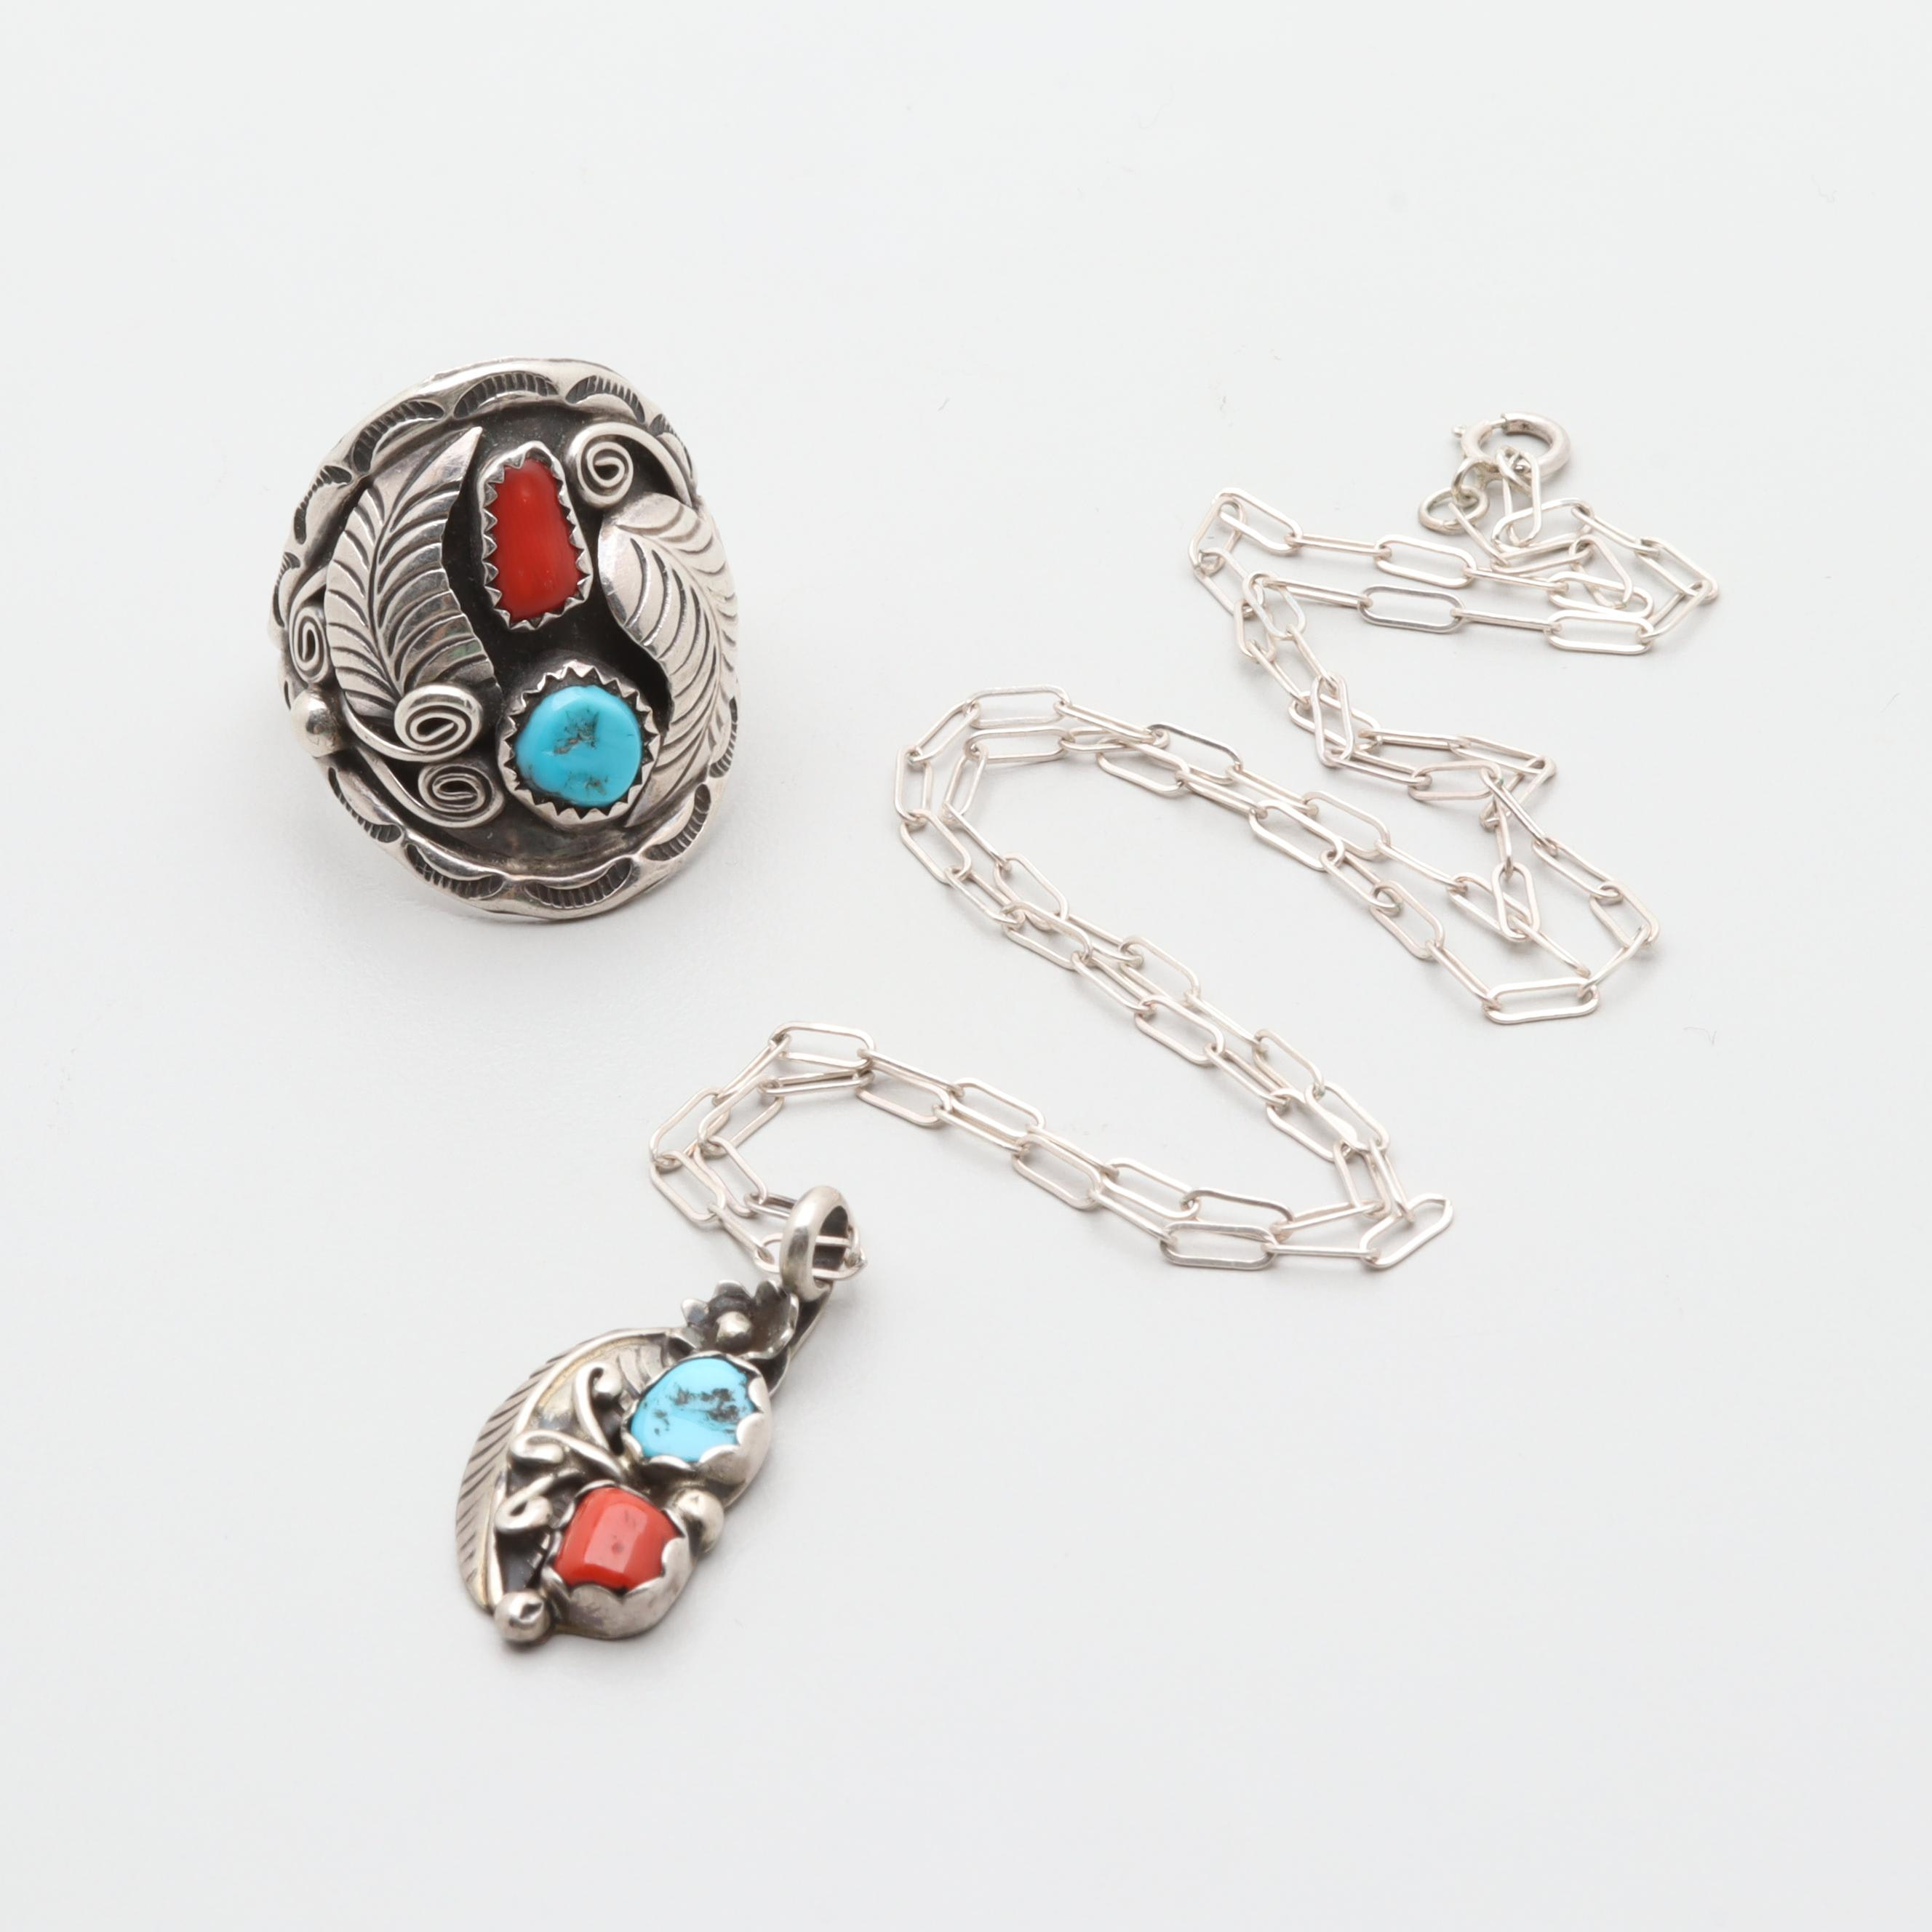 Sterling Silver Turquoise and Coral Necklace and Ring Including 800 Silver